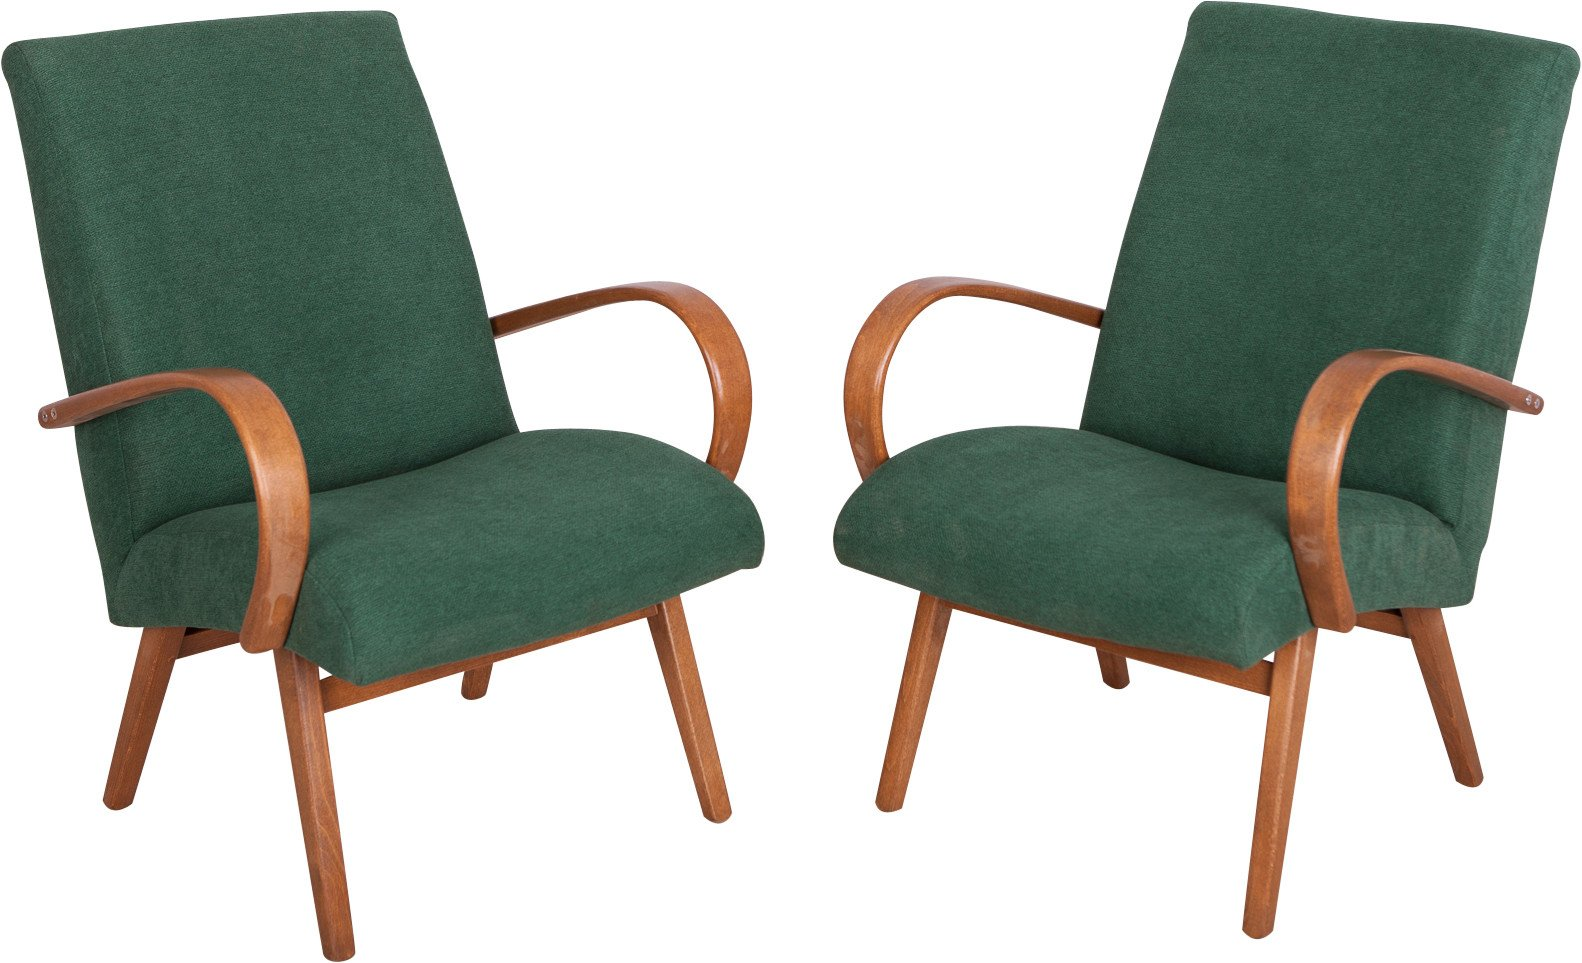 Pair of Armchairs, TON, Czechoslovakia, 1960s